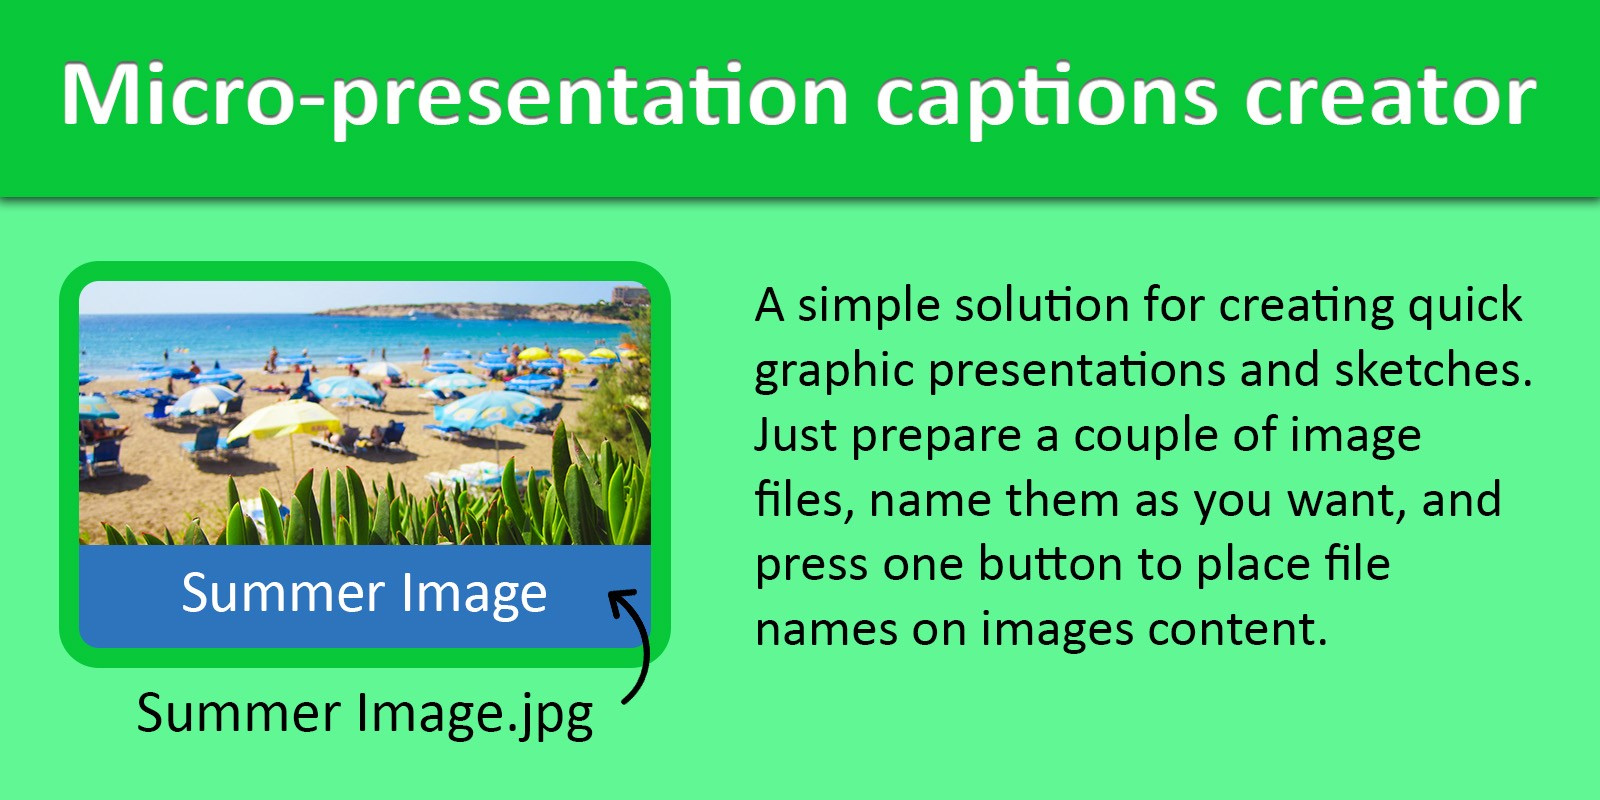 Micro-Presentation Captions Creator .NET